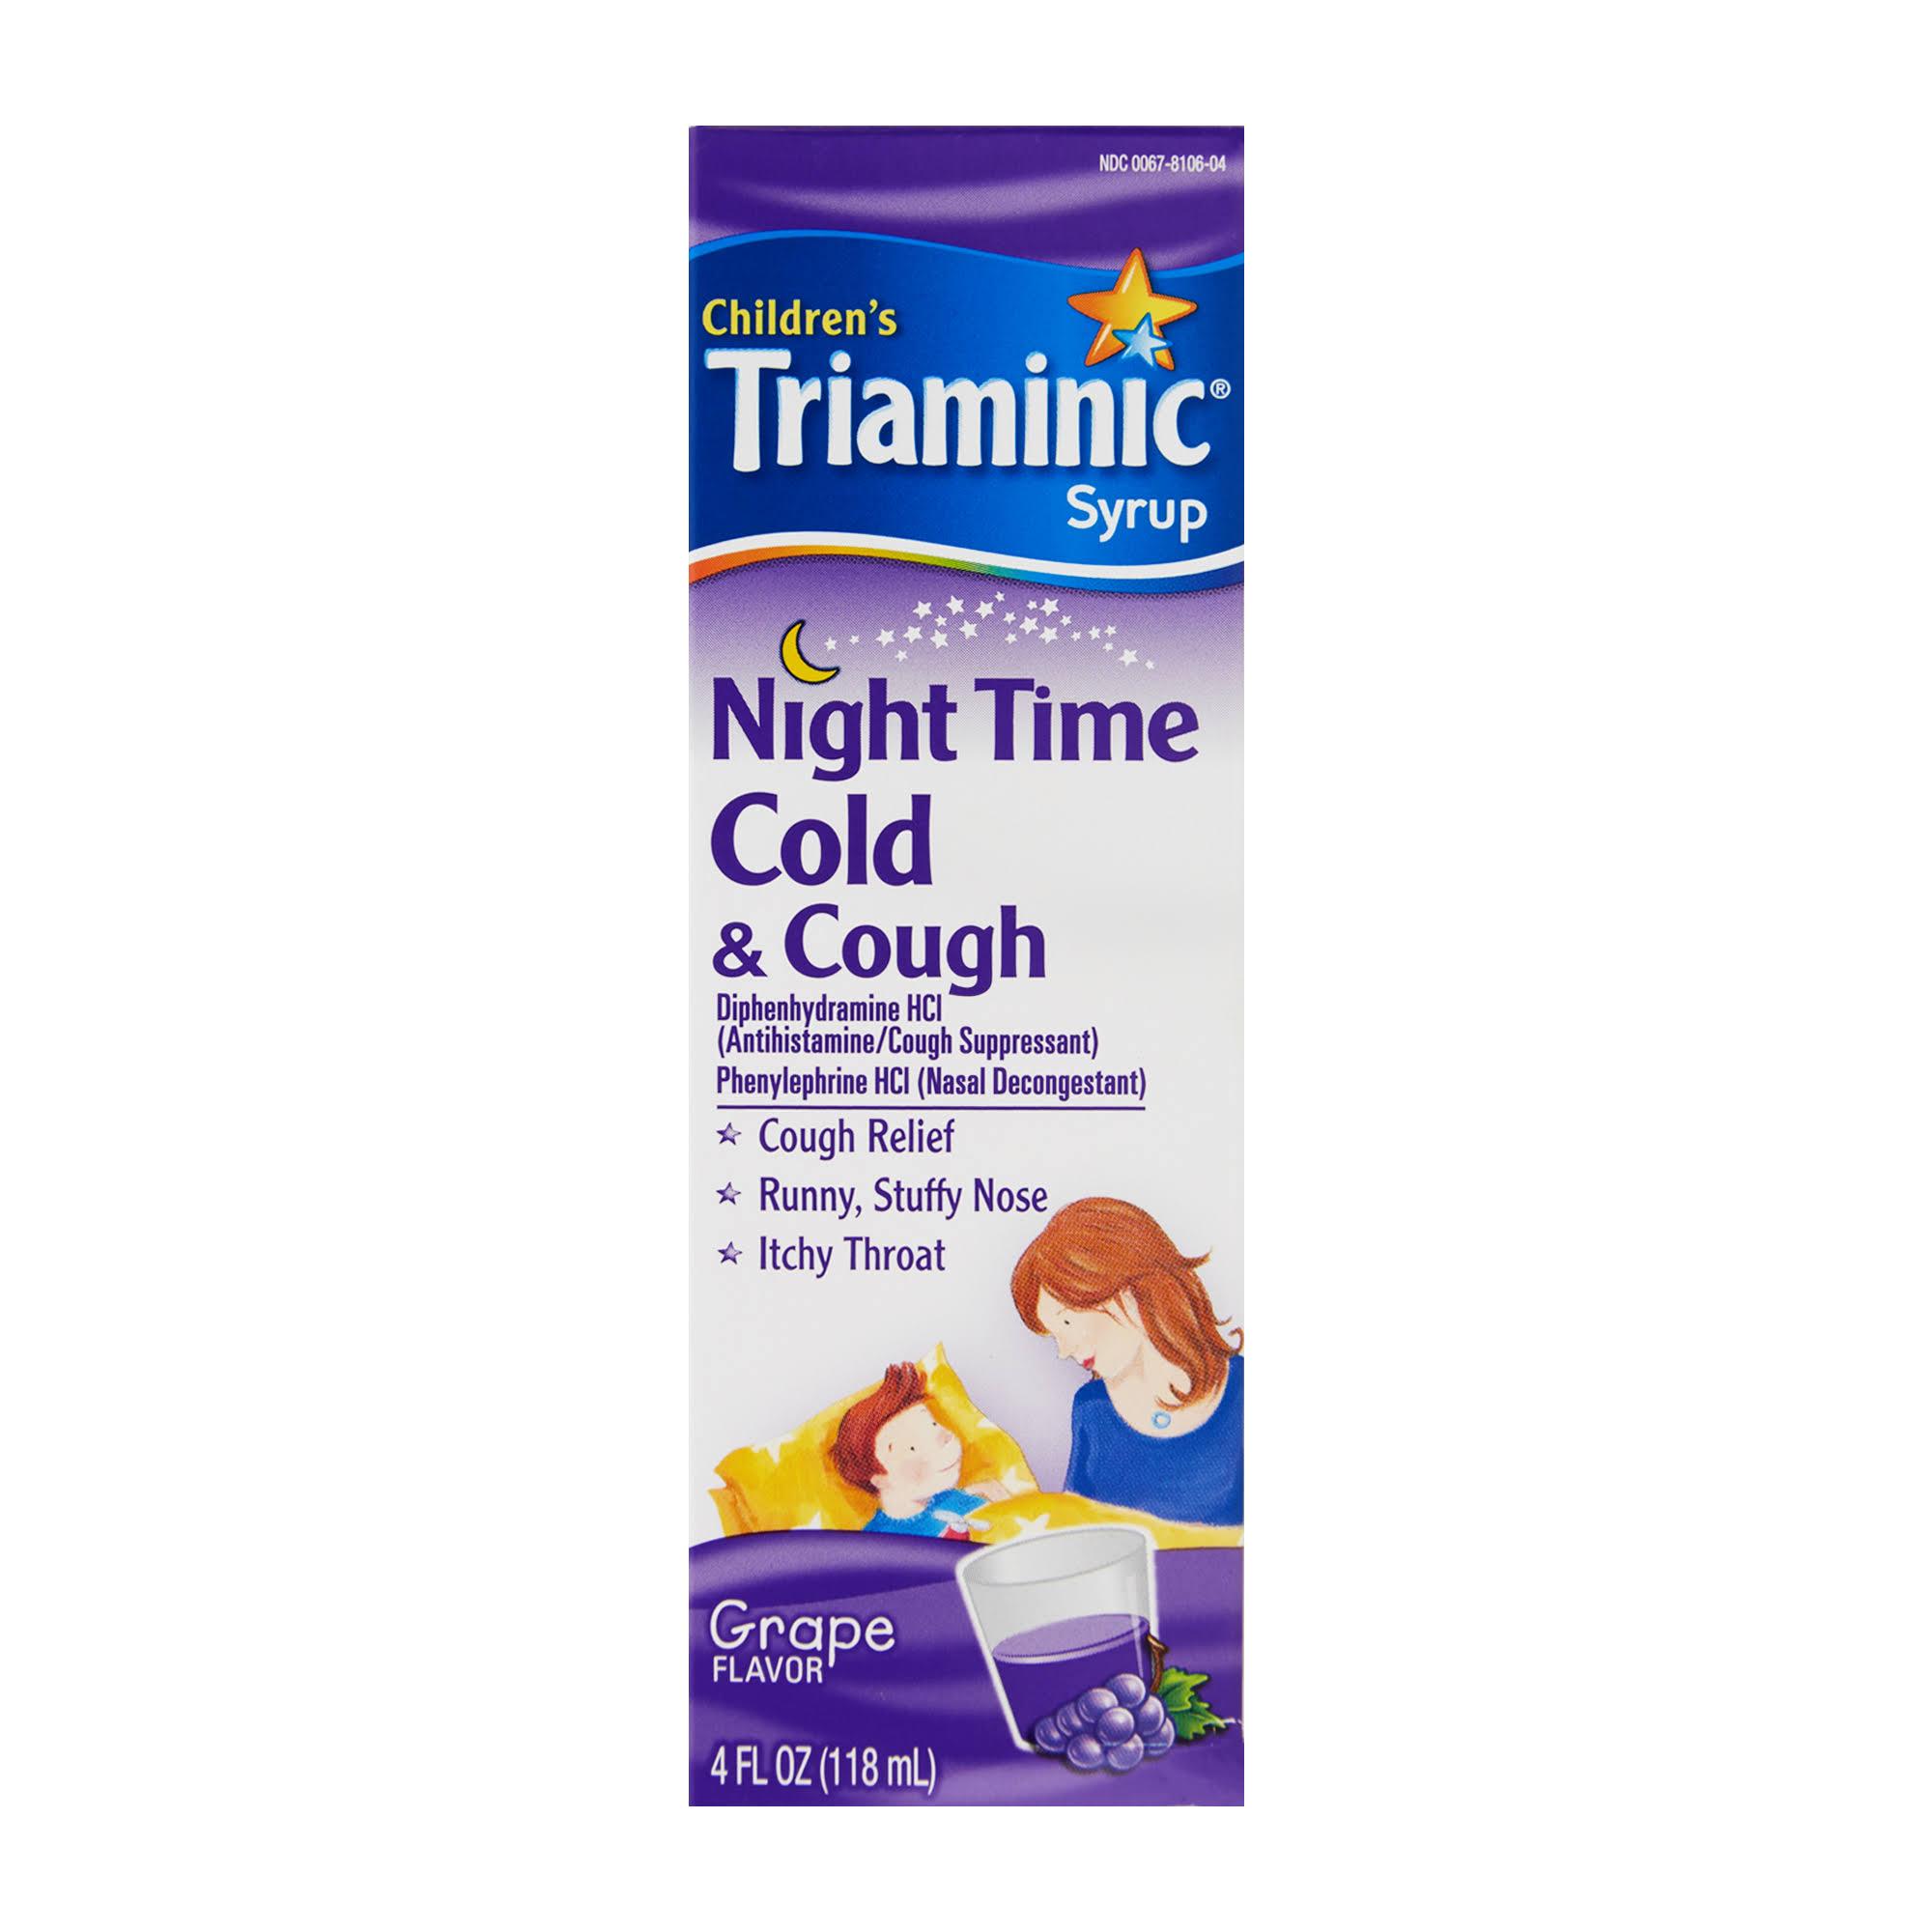 Triaminic Children's Night Time Cold and Cough Syrup - 4oz, Grape Flavor